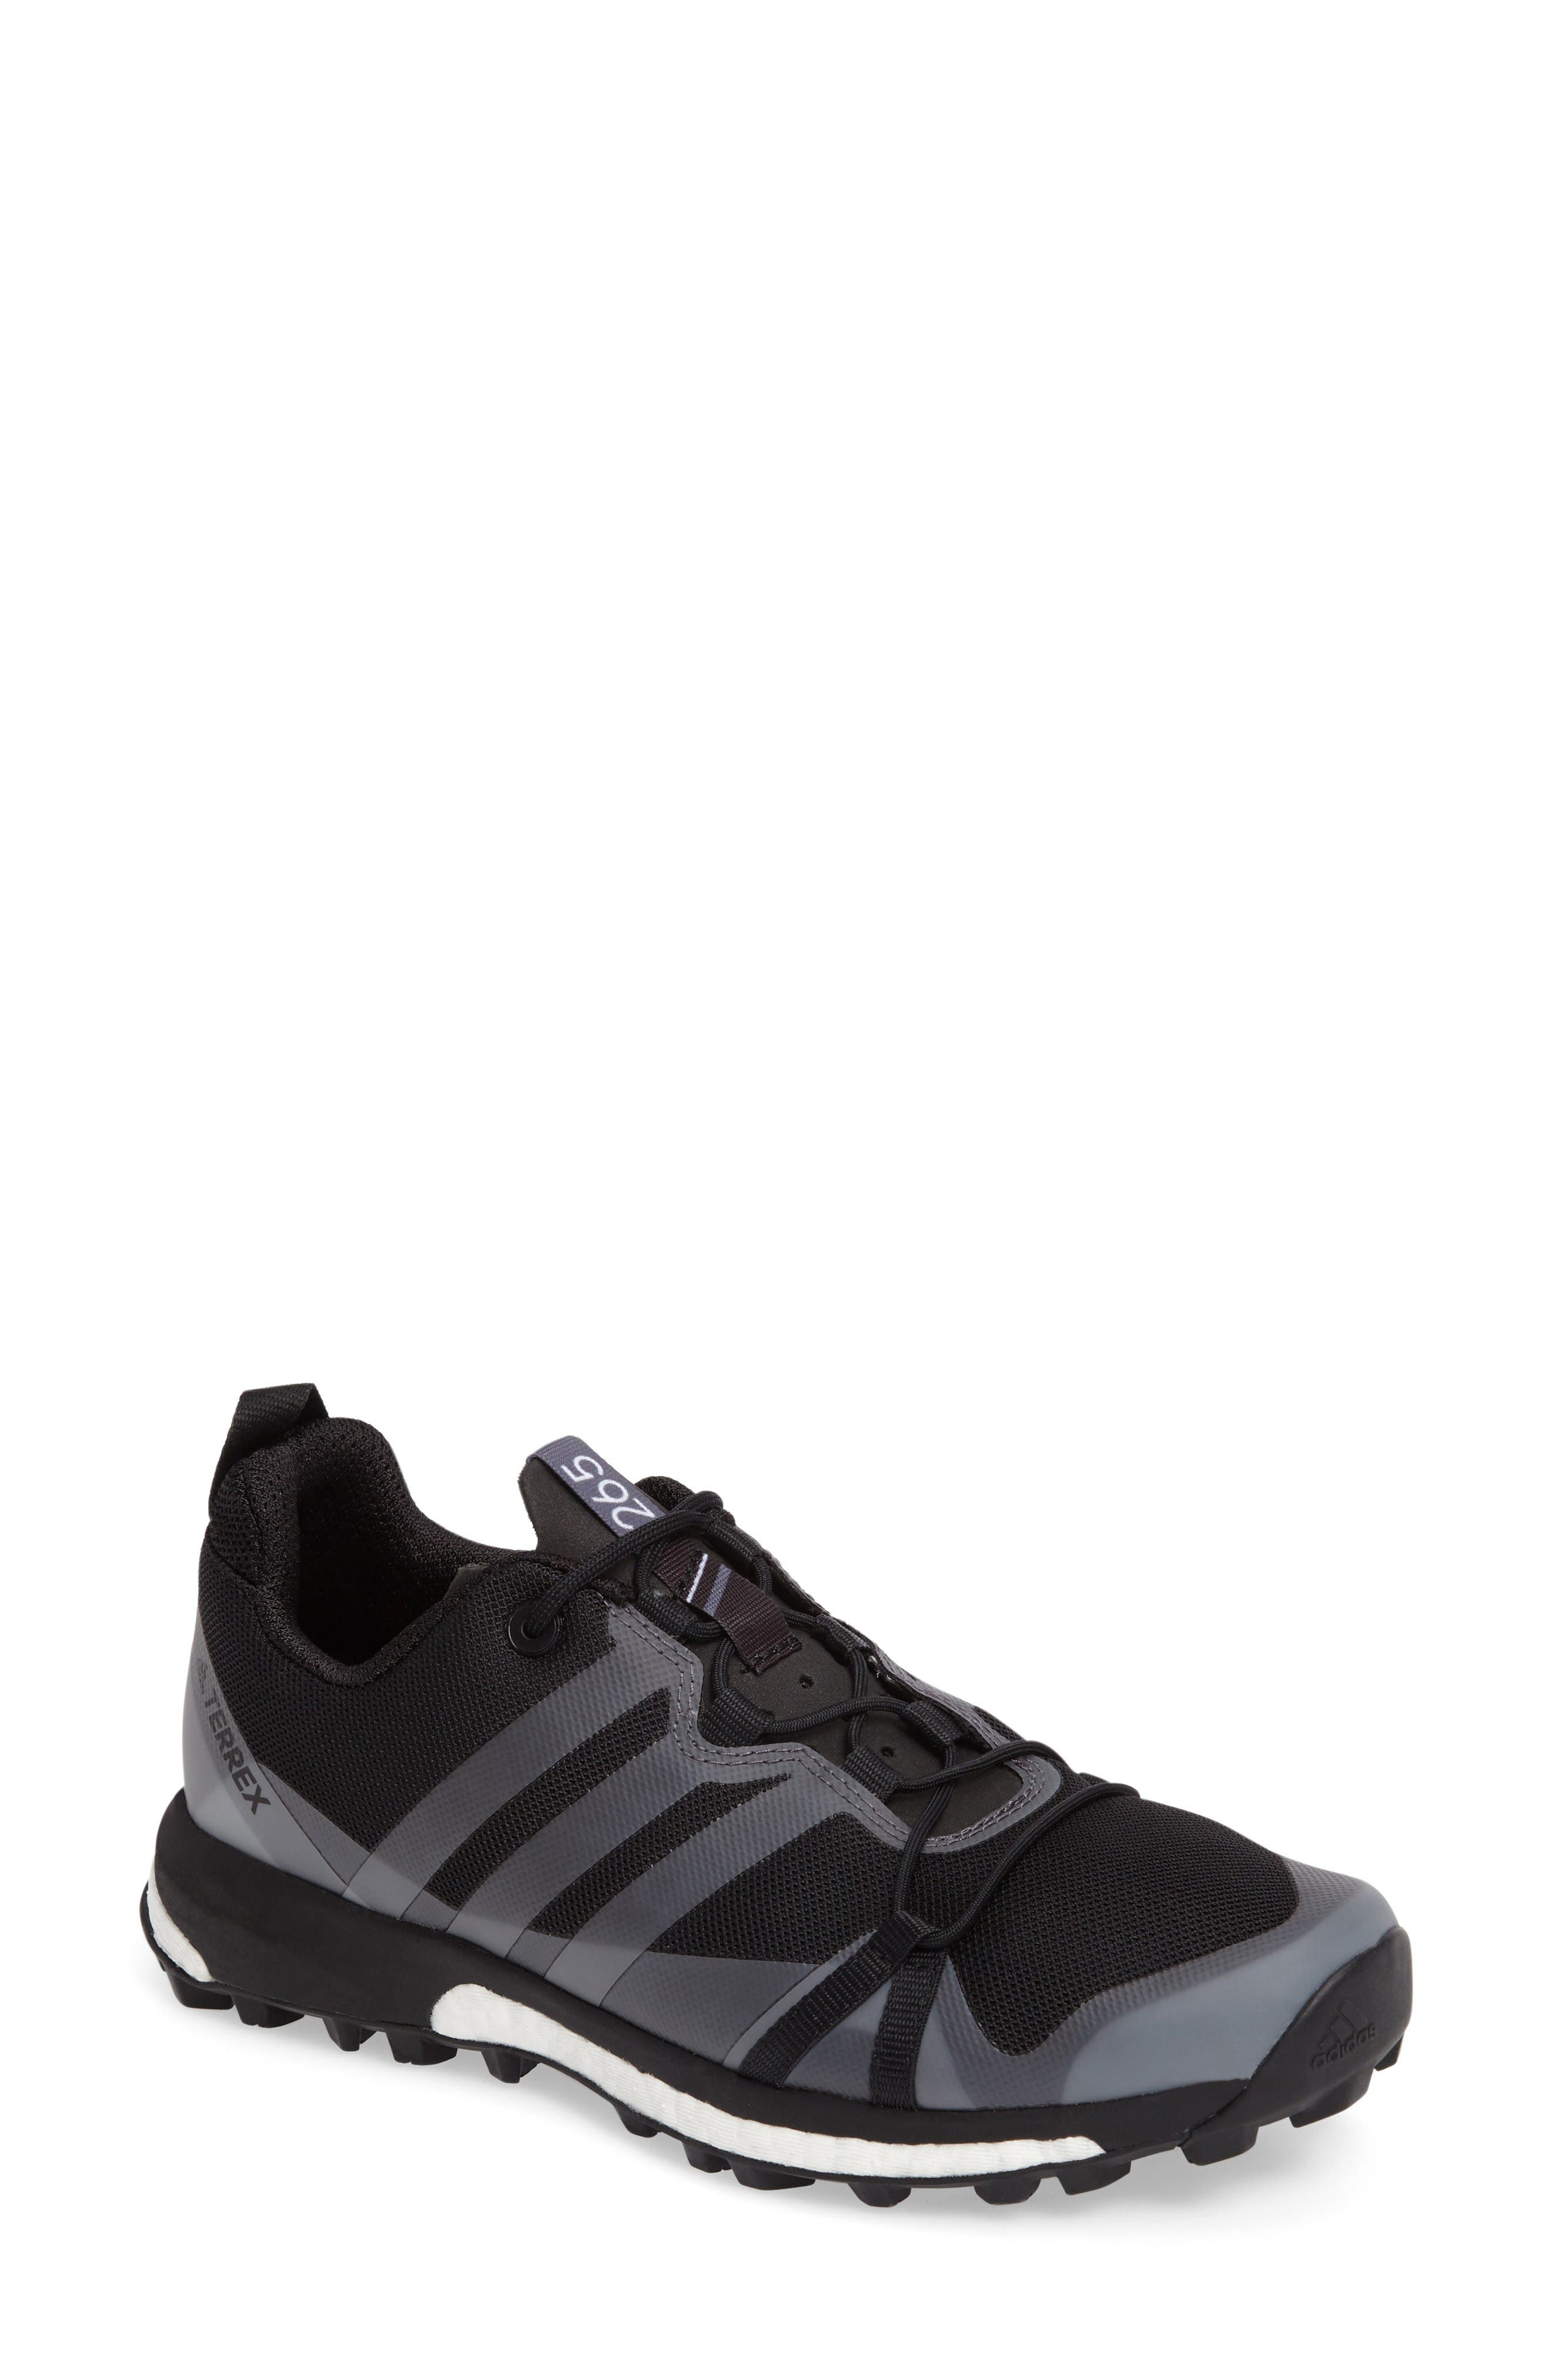 adidas Terrex Agravic GTX Hiking Shoe (Women)